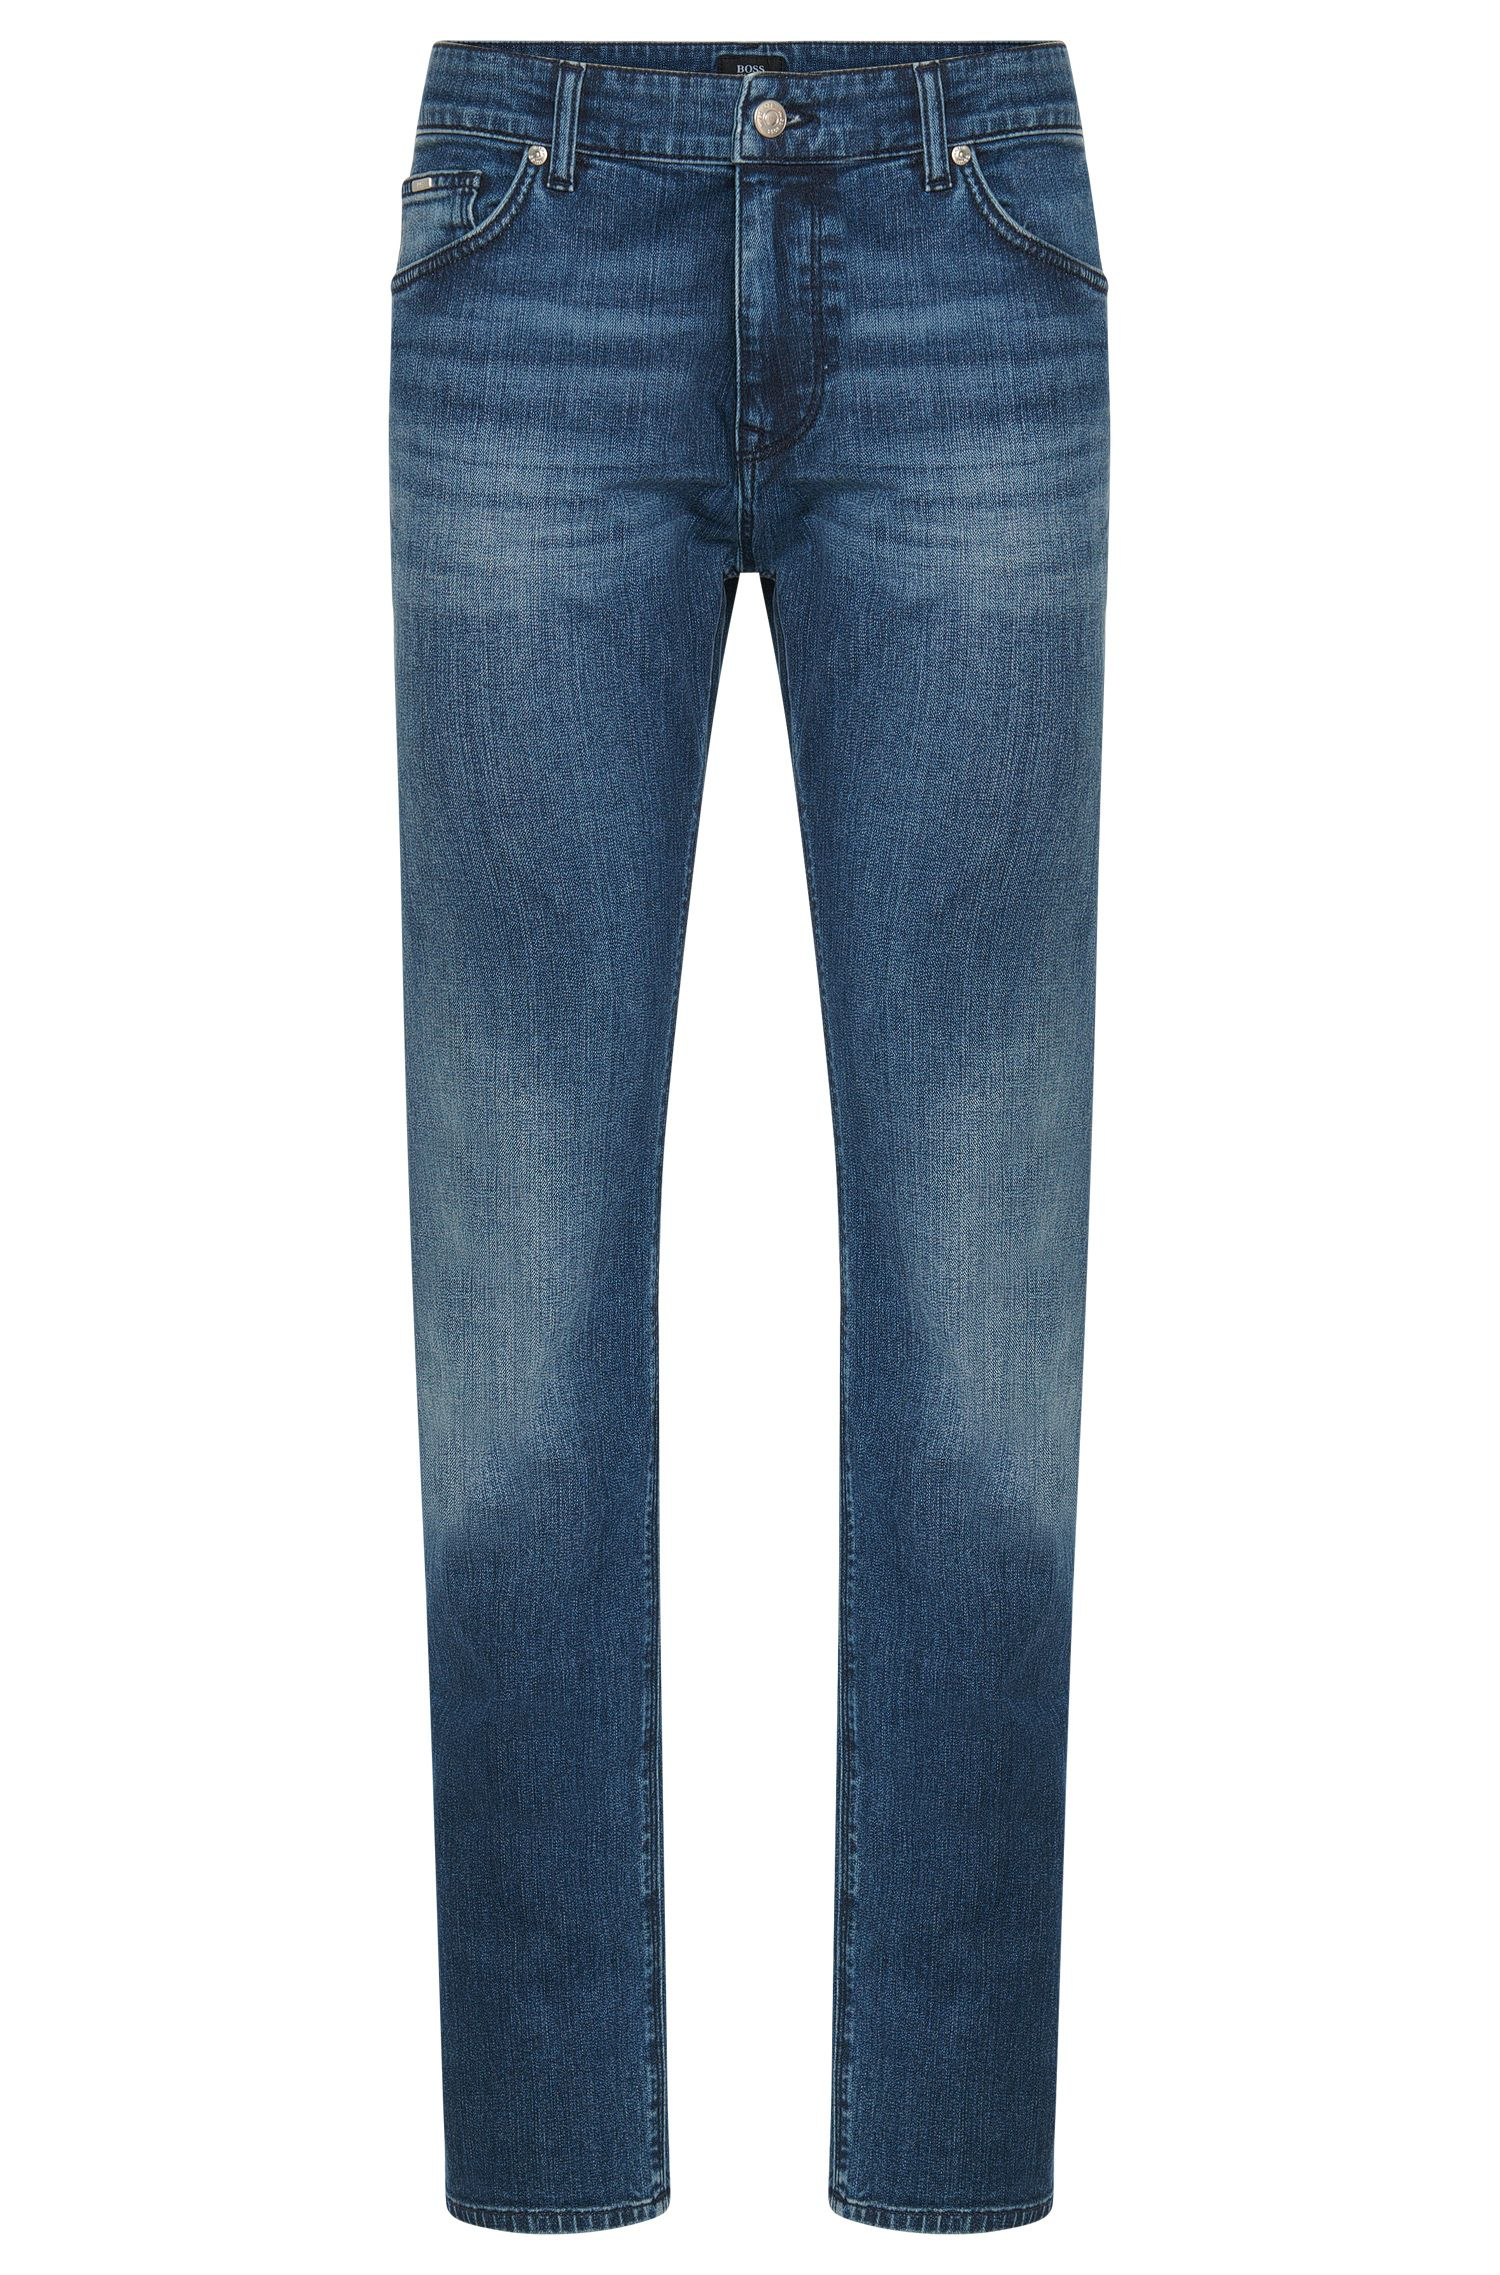 Jeans Regular Fit en coton extensible : « Maine3 »